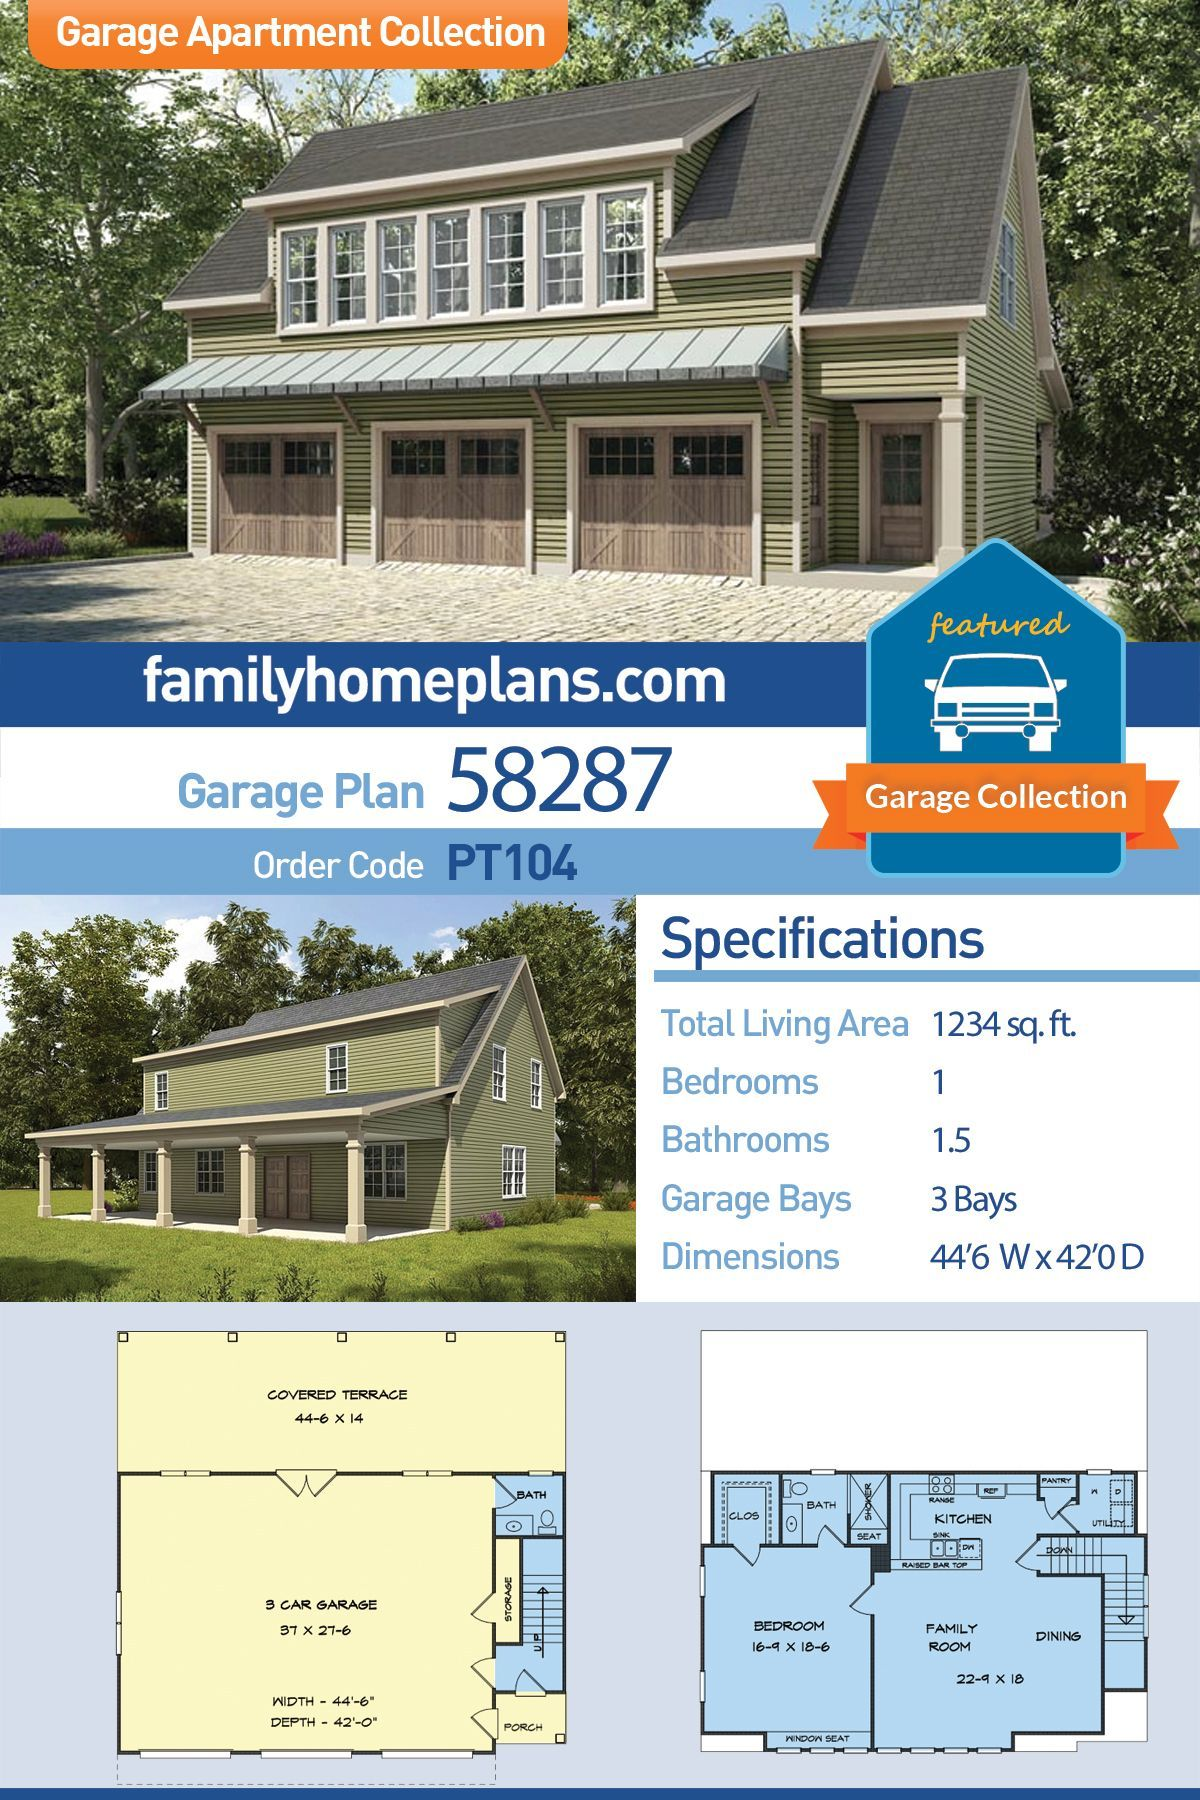 Three Car Garage Apartment Plan With Covered Porch At Family Home